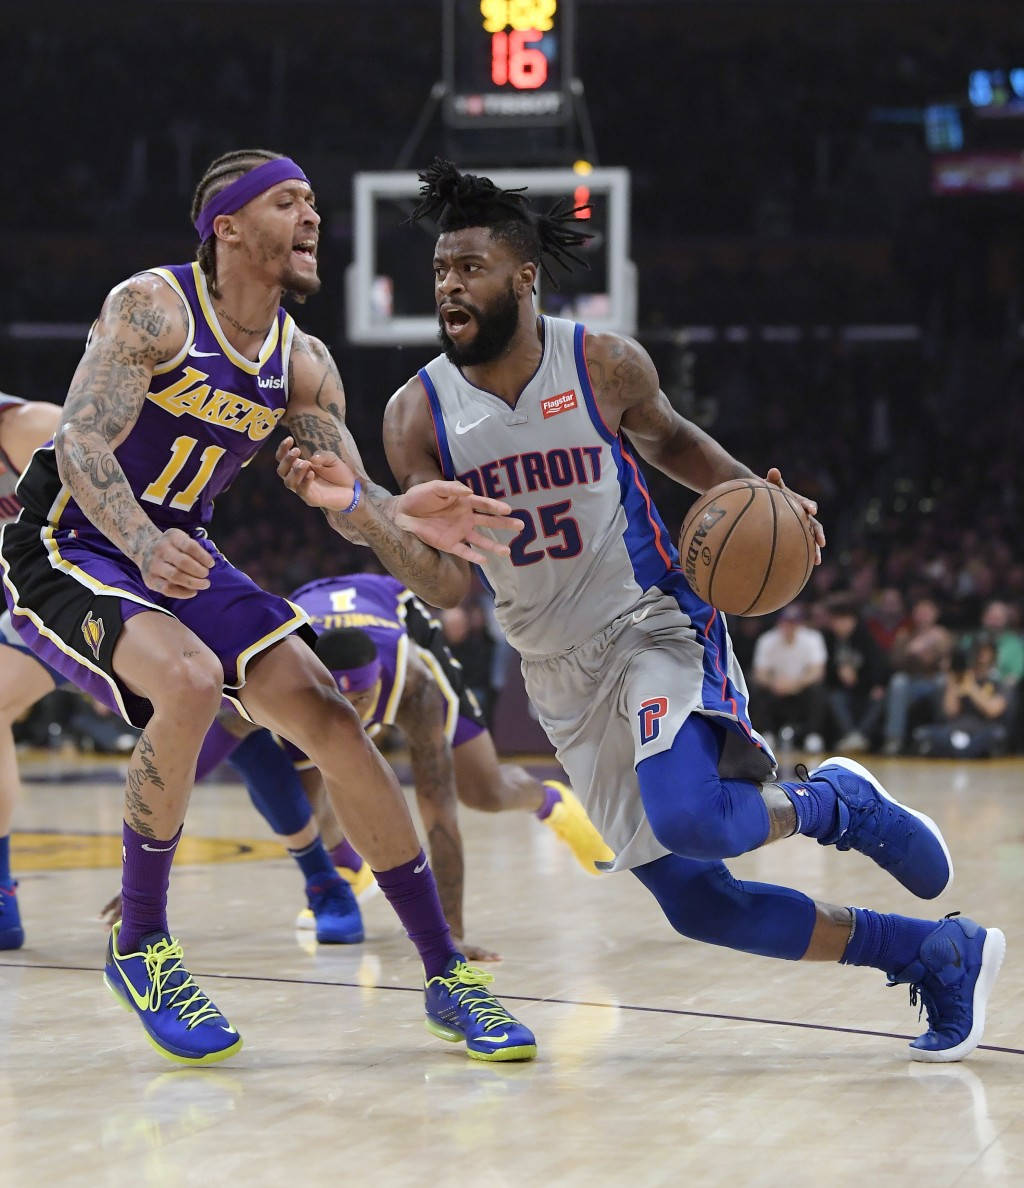 Detroit Pistons guard Reggie Bullock, right, tries to drive past Los Angeles Lakers forward Michael Beasley during the first half of an NBA basketball